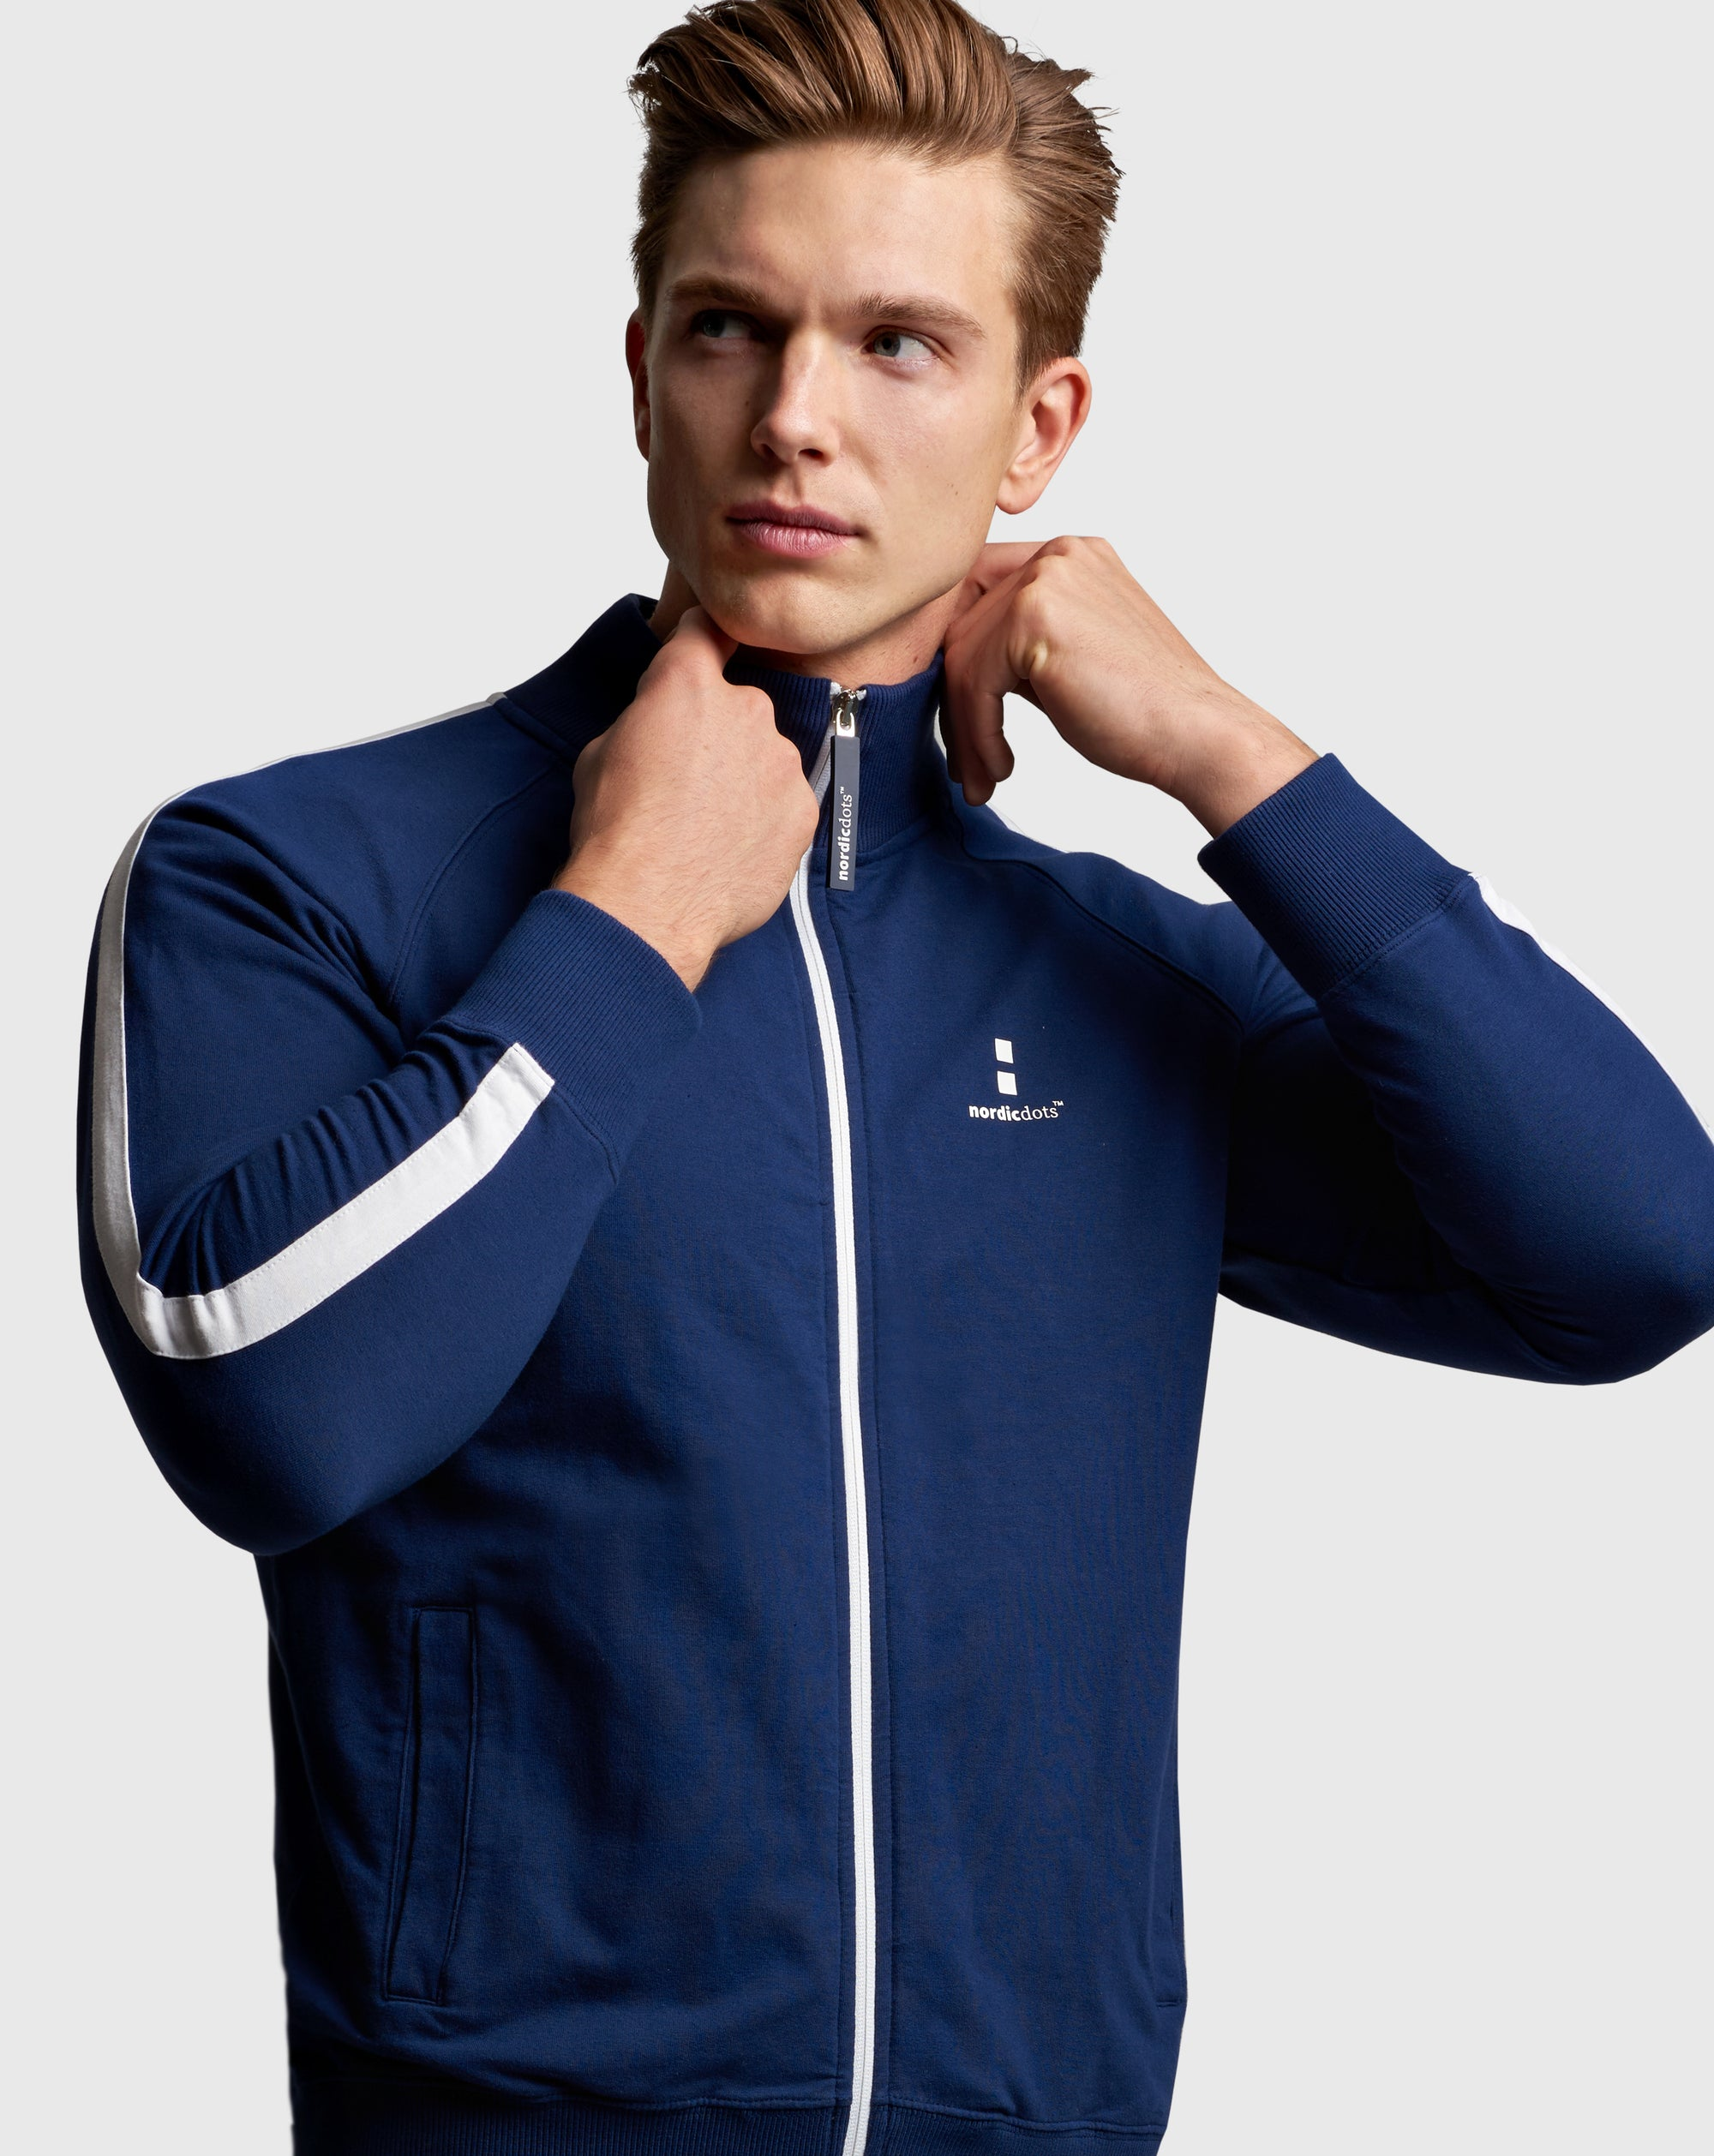 nordicdots tennis jacket organic cotton